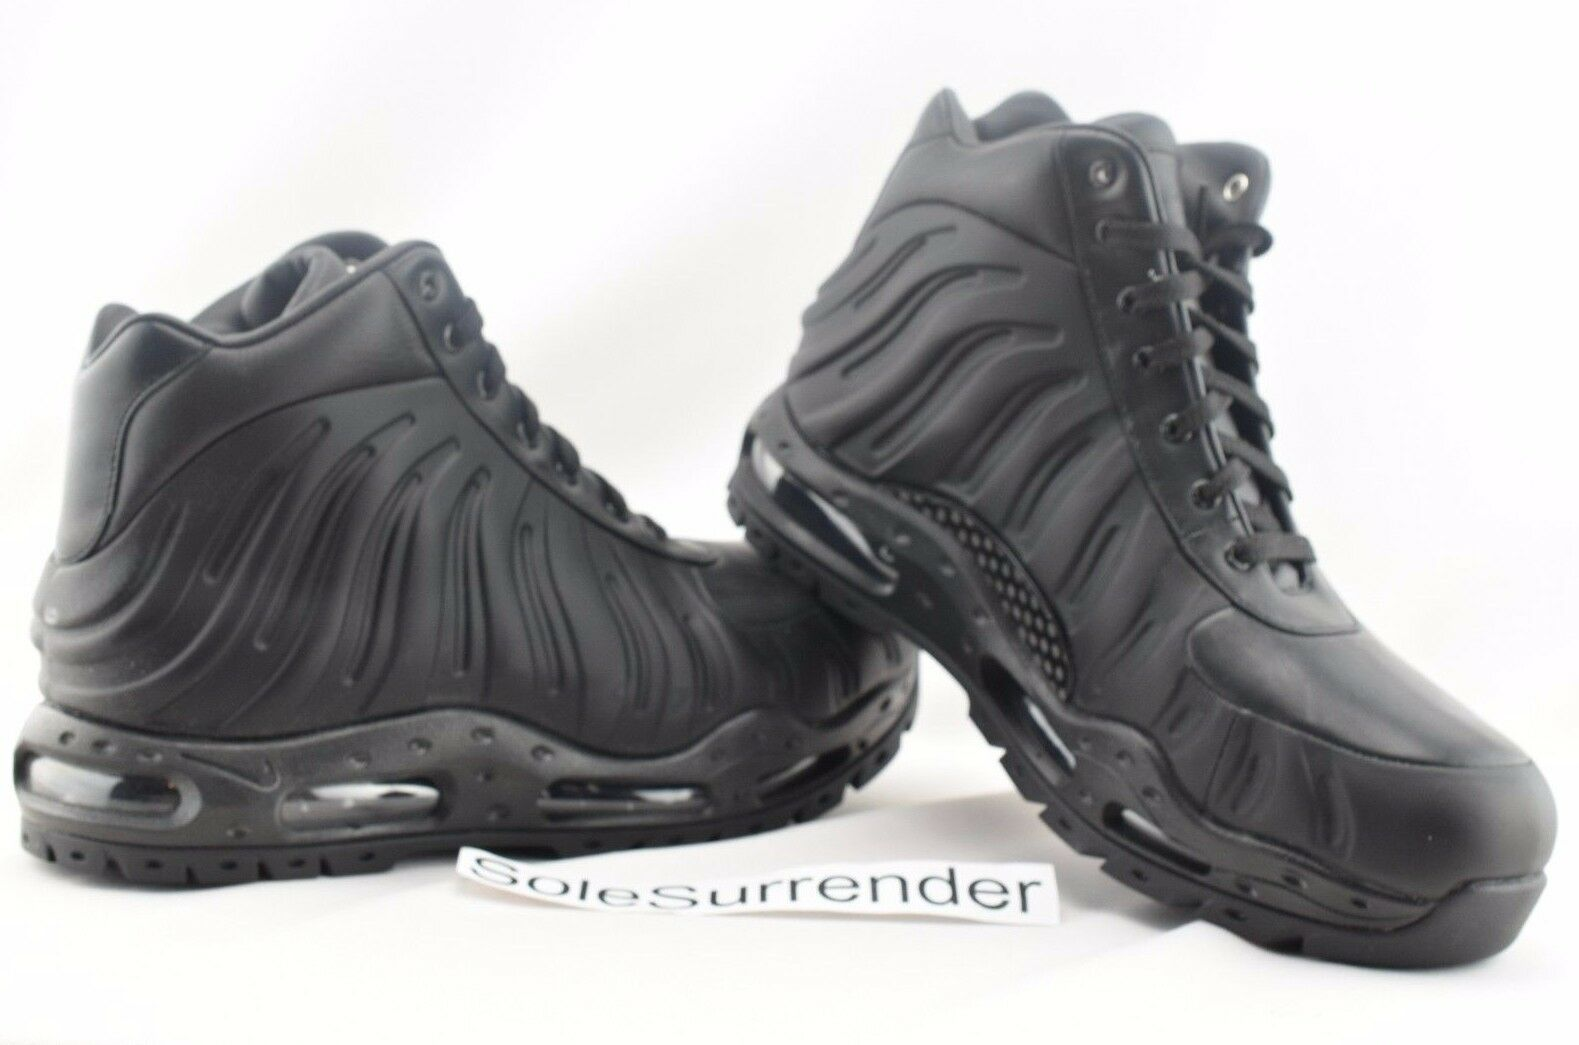 f49797fc7a3 Nike Air Max Foamdome ACG Foamposite BOOTS Black 843749-002 Men s ...